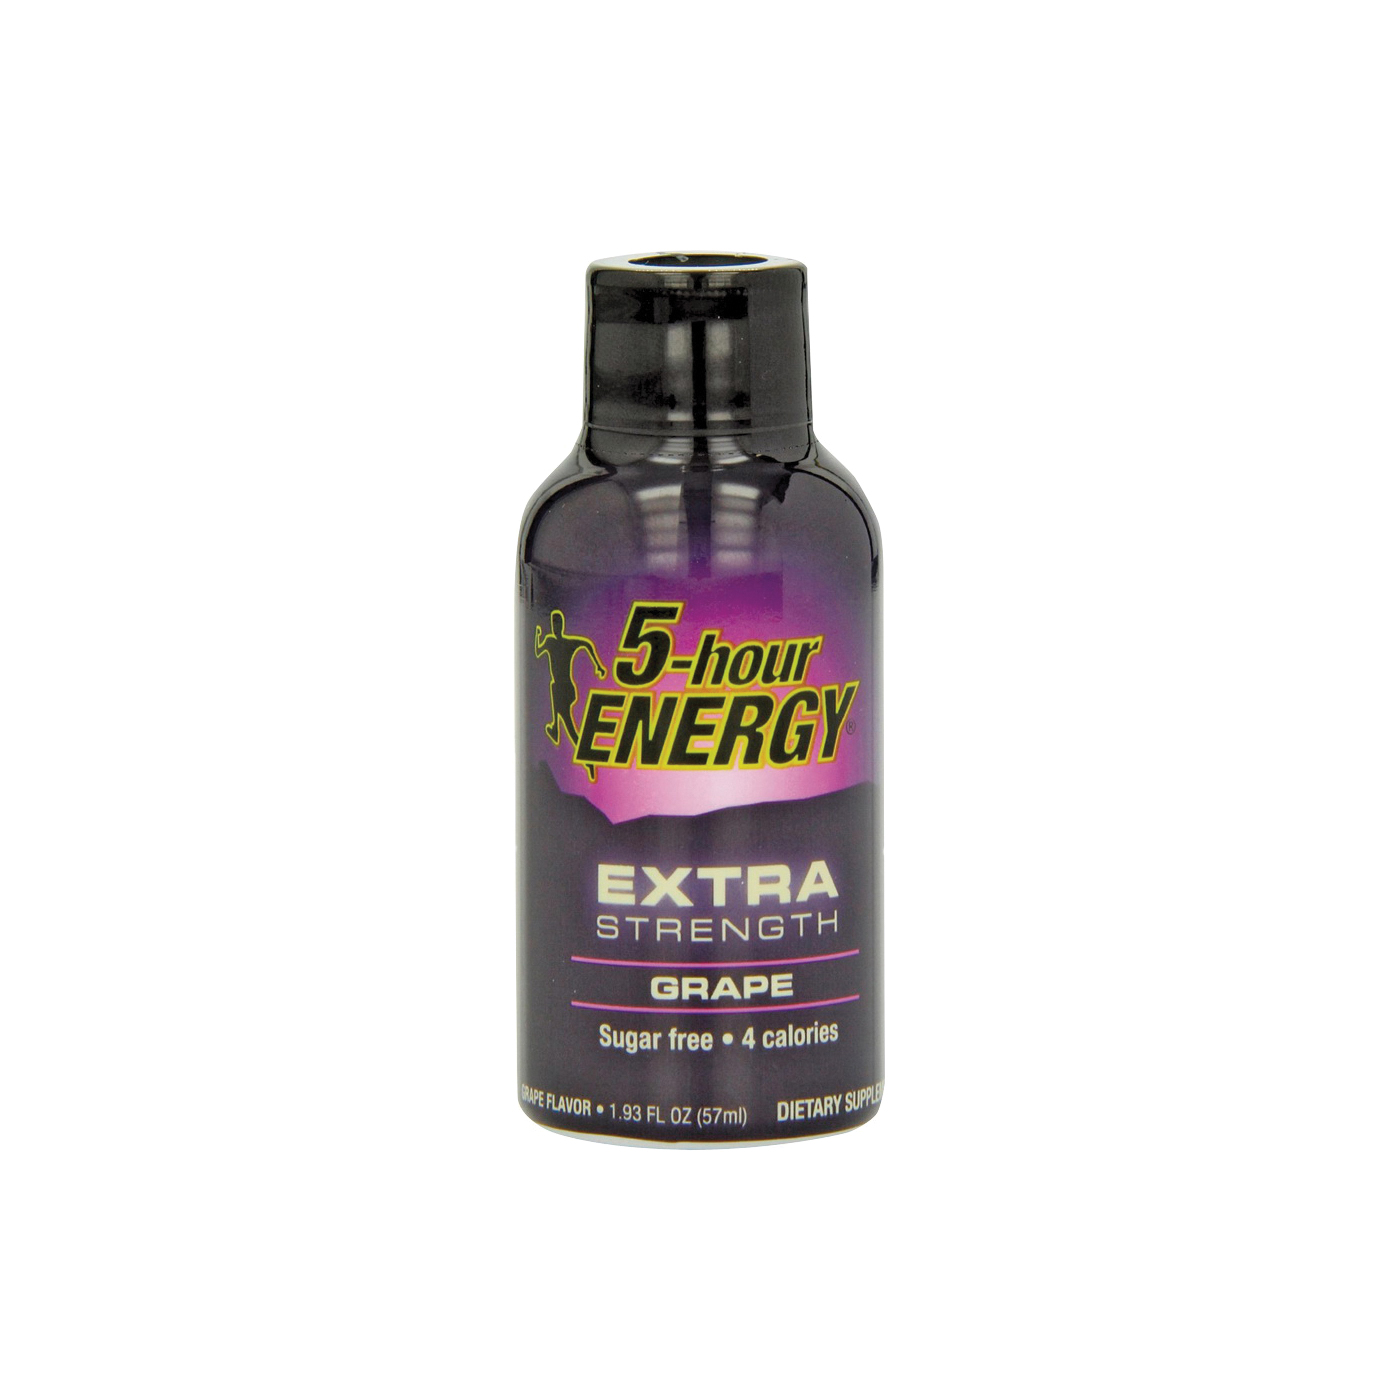 Picture of 5-hour ENERGY 728127 Sugar-Free Energy Drink, Liquid, Grape Flavor, 1.93 oz Package, Bottle